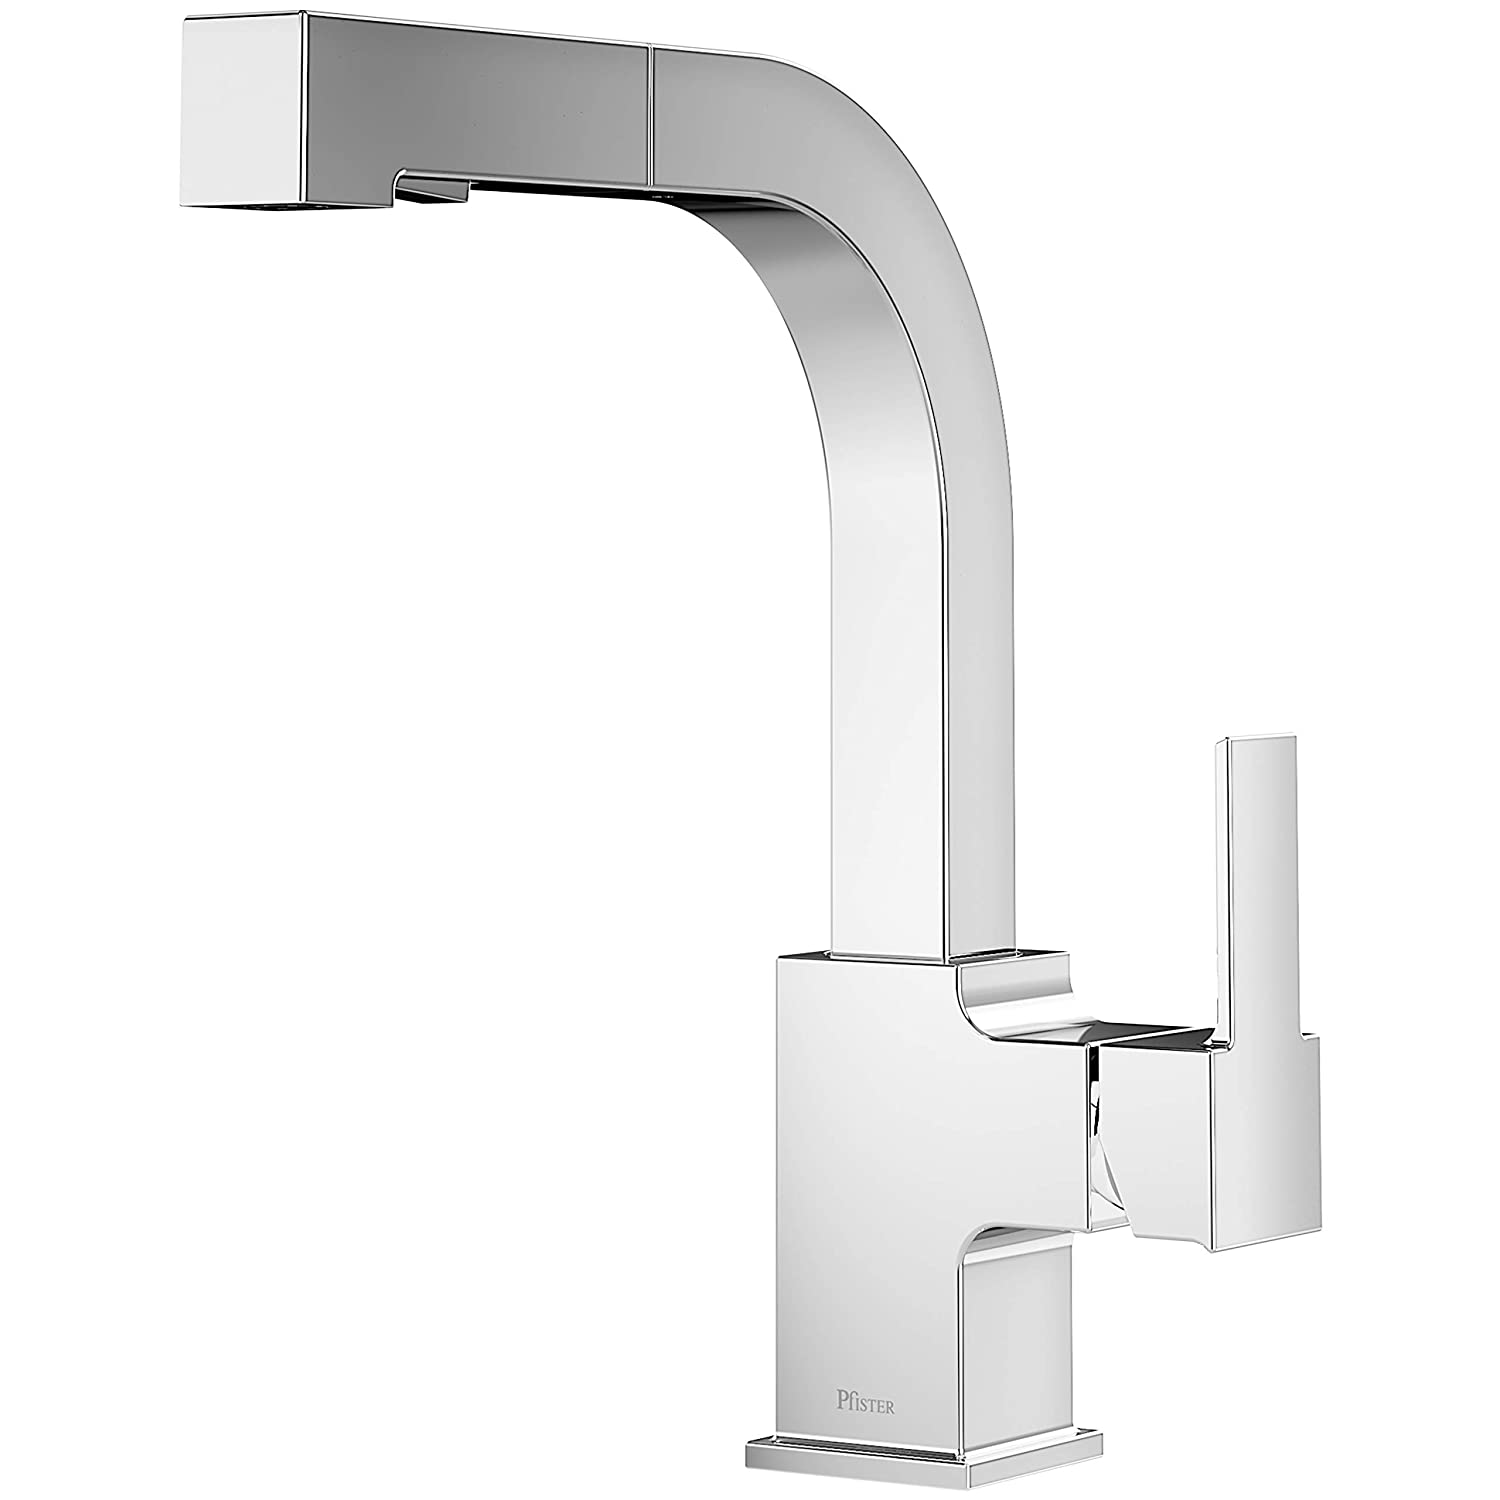 Pfister LG534-LPMC Arkitek Kitchen Faucet With Pull-Out Sprayhead, Polished Chrome